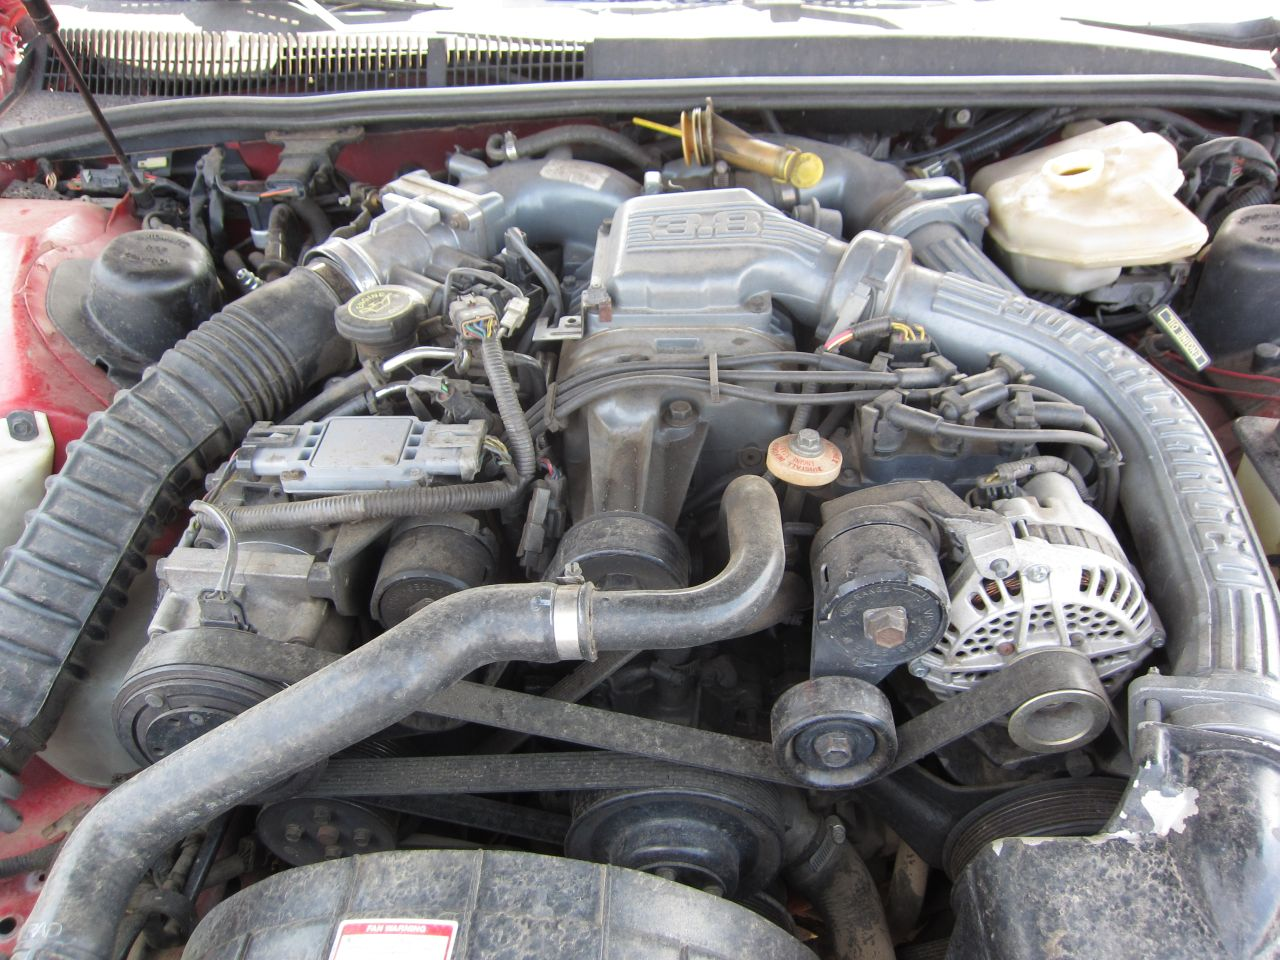 Junkyard Find 1990 Ford Thunderbird Super Coupe The Truth About Cars Wiring Diagram 2004 Vw Passat Turbo Intercooler 1997 Toyota